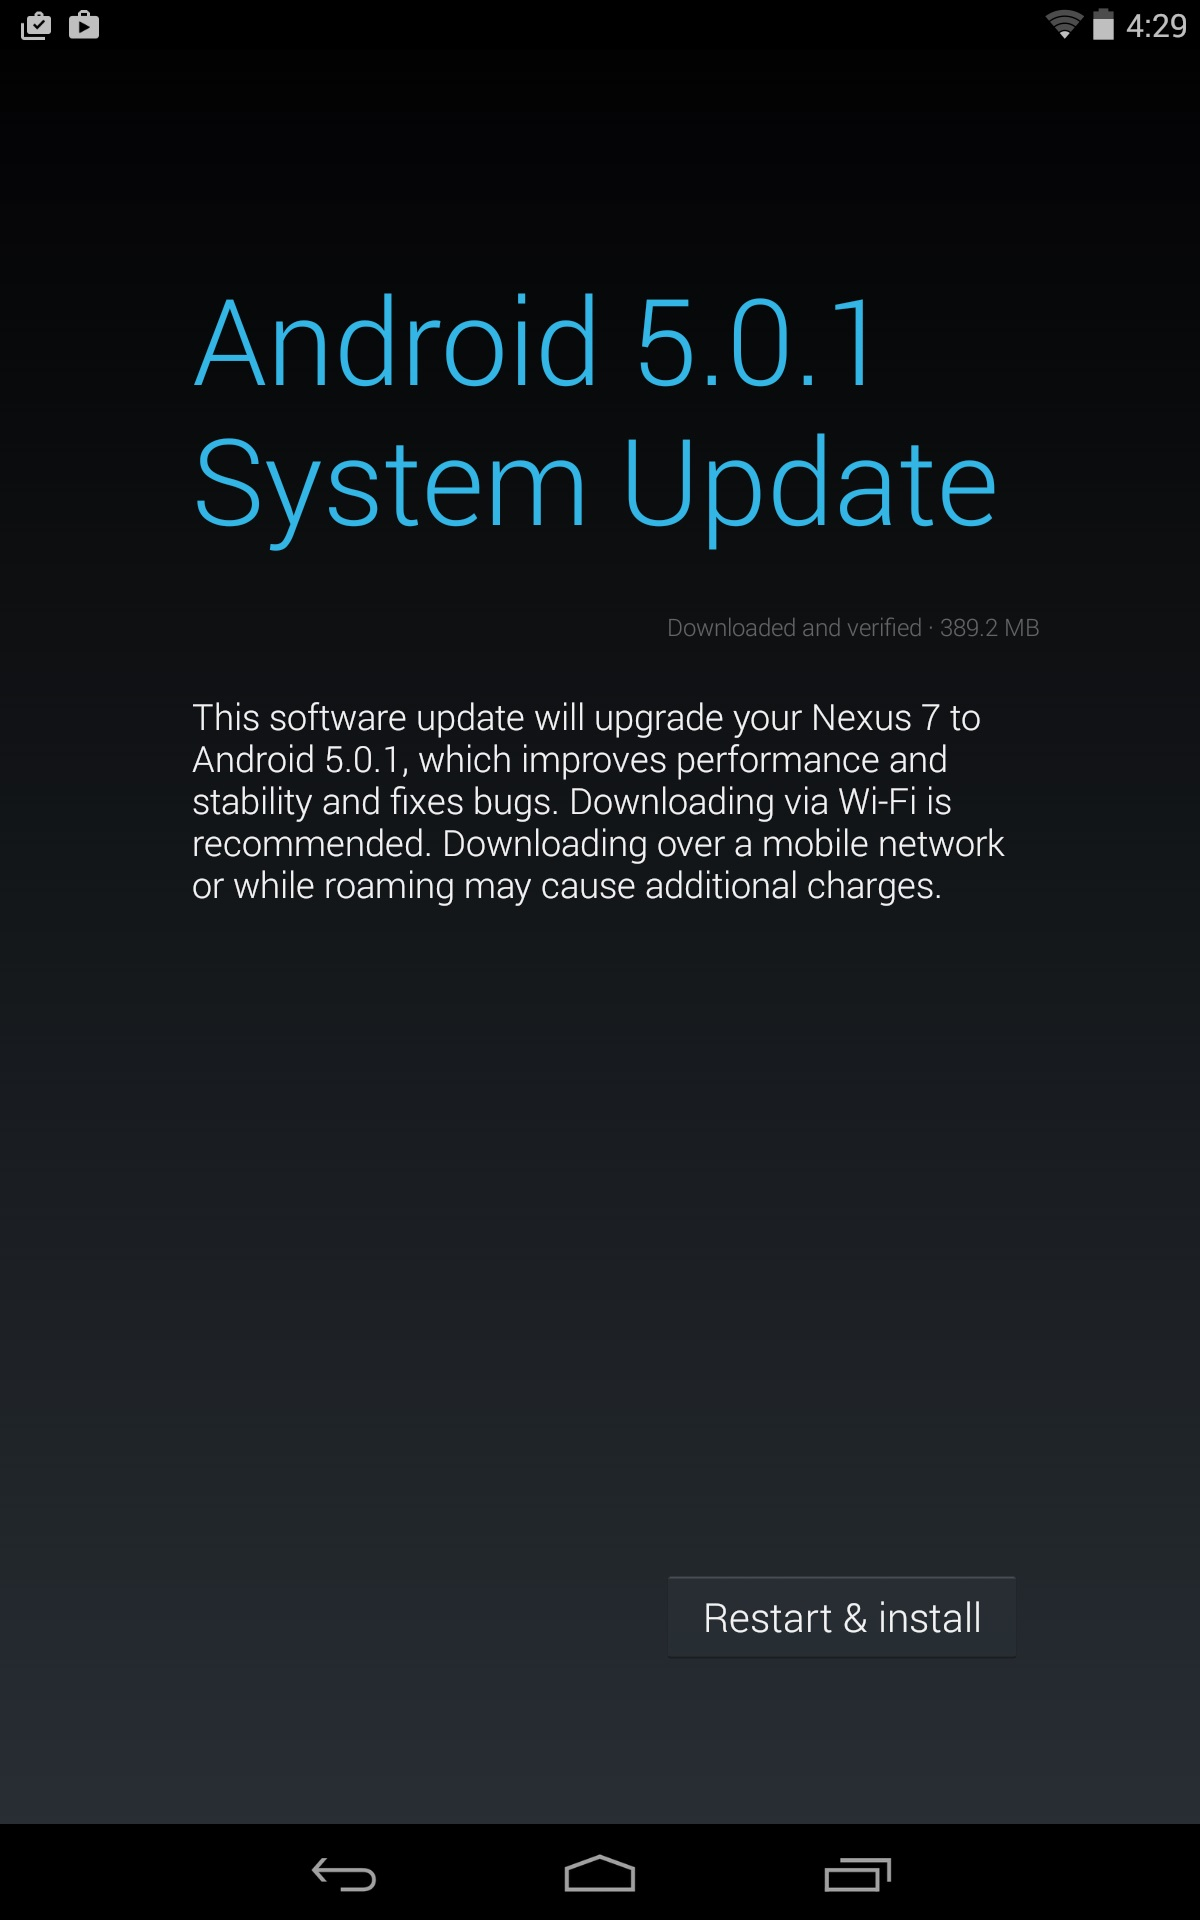 Android 5 0 1 lollipop and 5 0 2 update for nexus devices android - Android 5 0 1 Lollipop Ota Released To Nexus 4 6 7 Moto G Gpe Google Mobile Os Update Still Awaited For Nexus 5